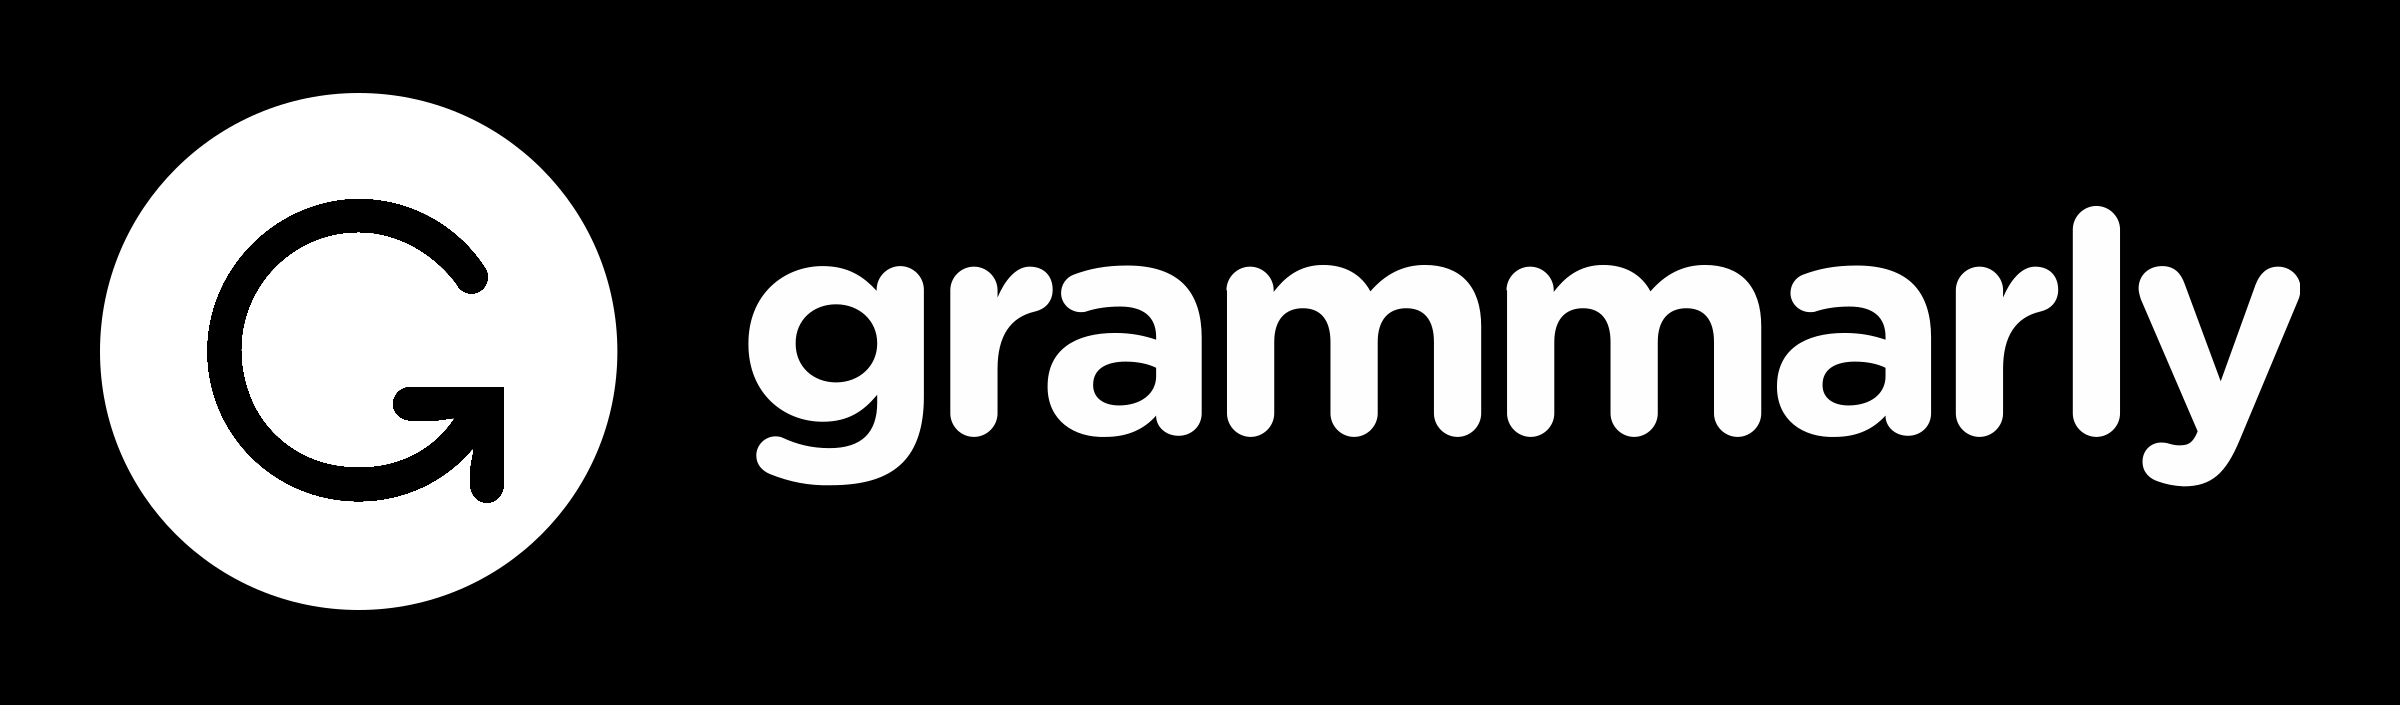 Grammarly Logo PNG Transparent & SVG Vector.